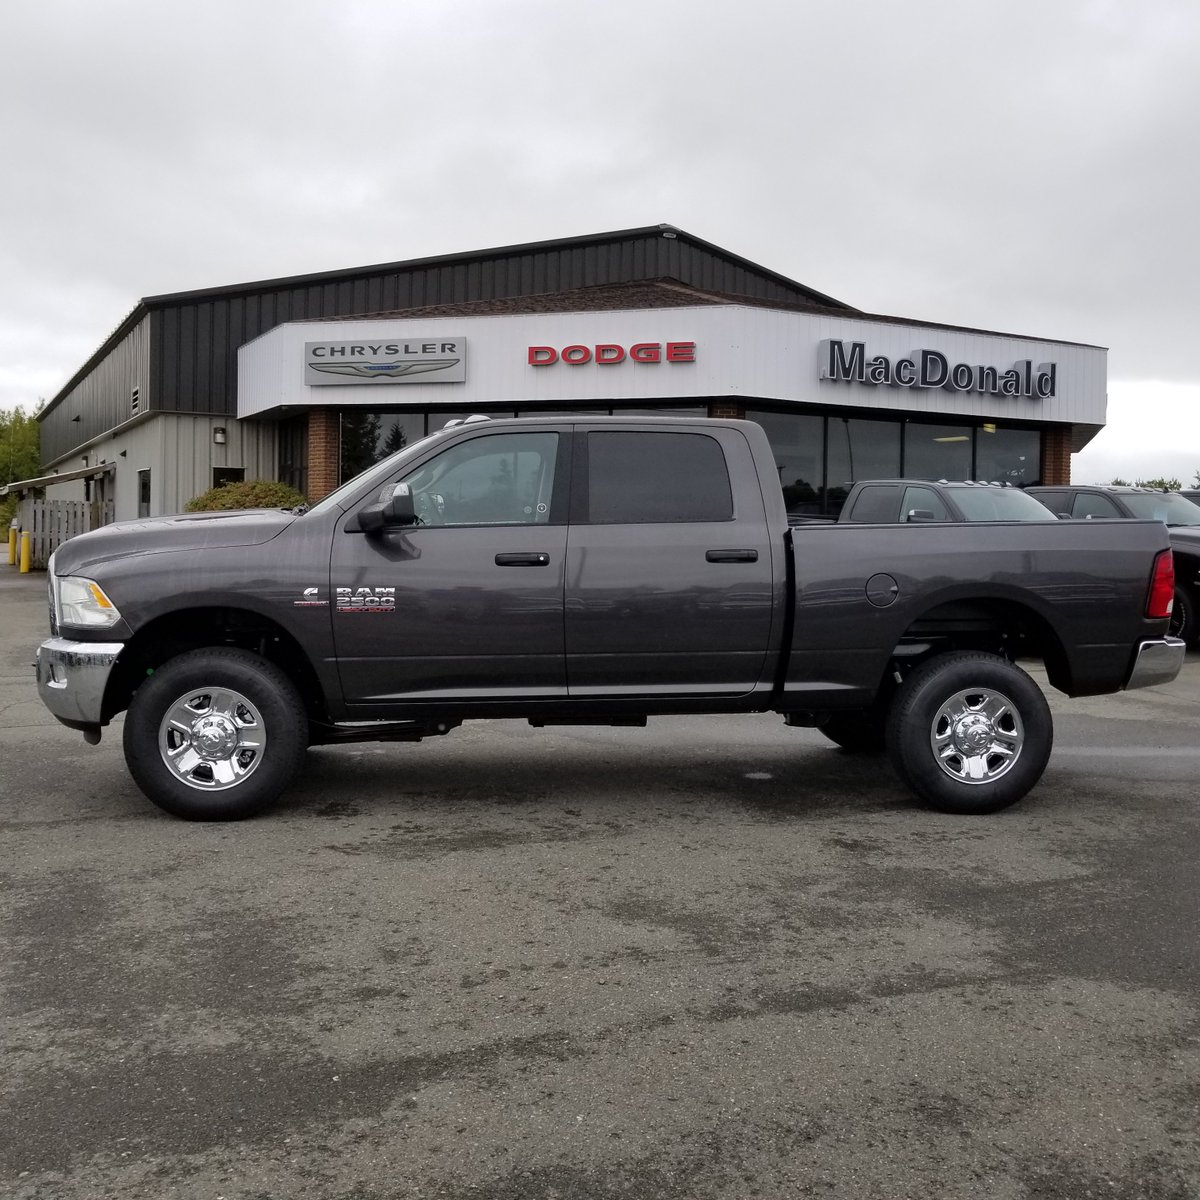 Macdonald Chrysler On Twitter 2018 Ram 2500 Slt Crew Cab 4x4 In Granite Crystal Metallic With The 6 7l Cummins Turbo Diesel 6 Speed Automatic Anti Spin Differential Rear Axle Electronic Brake Controller Spray In Bedliner